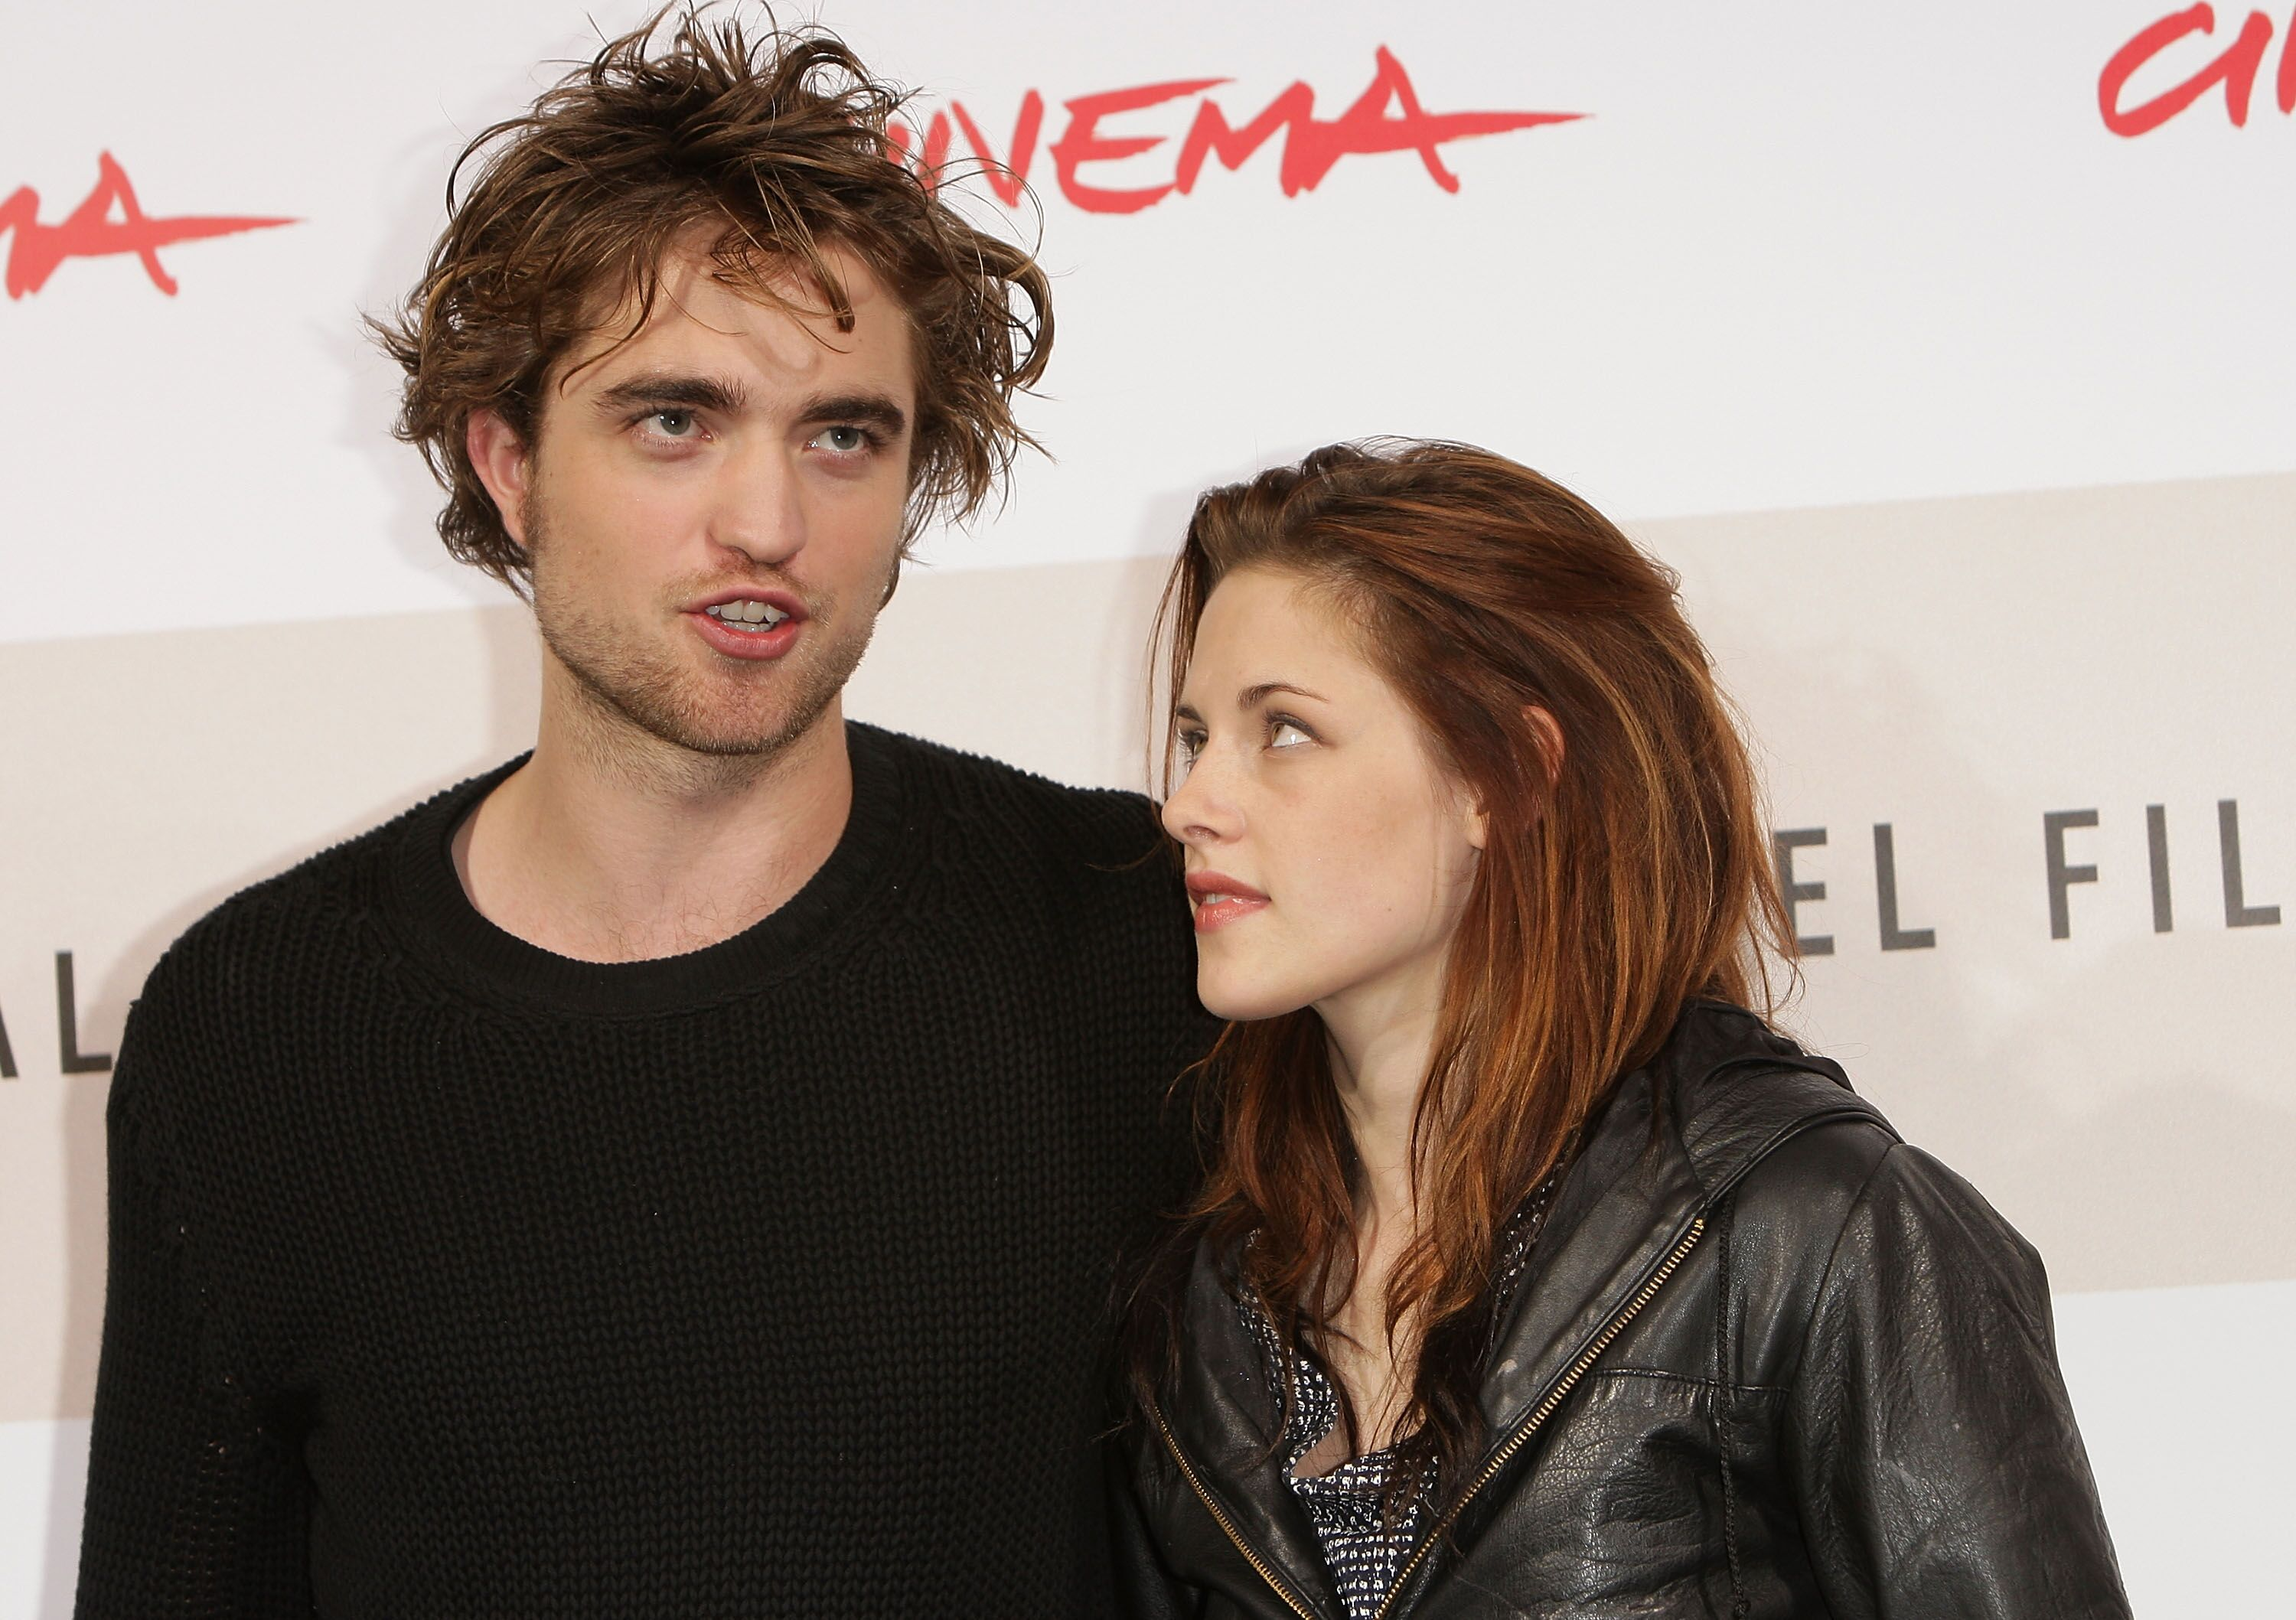 Robert Pattinson and Kristen Stewart attends the 'Twilight' Photocall during the 3rd Rome International Film Festival. | Source: Getty Images